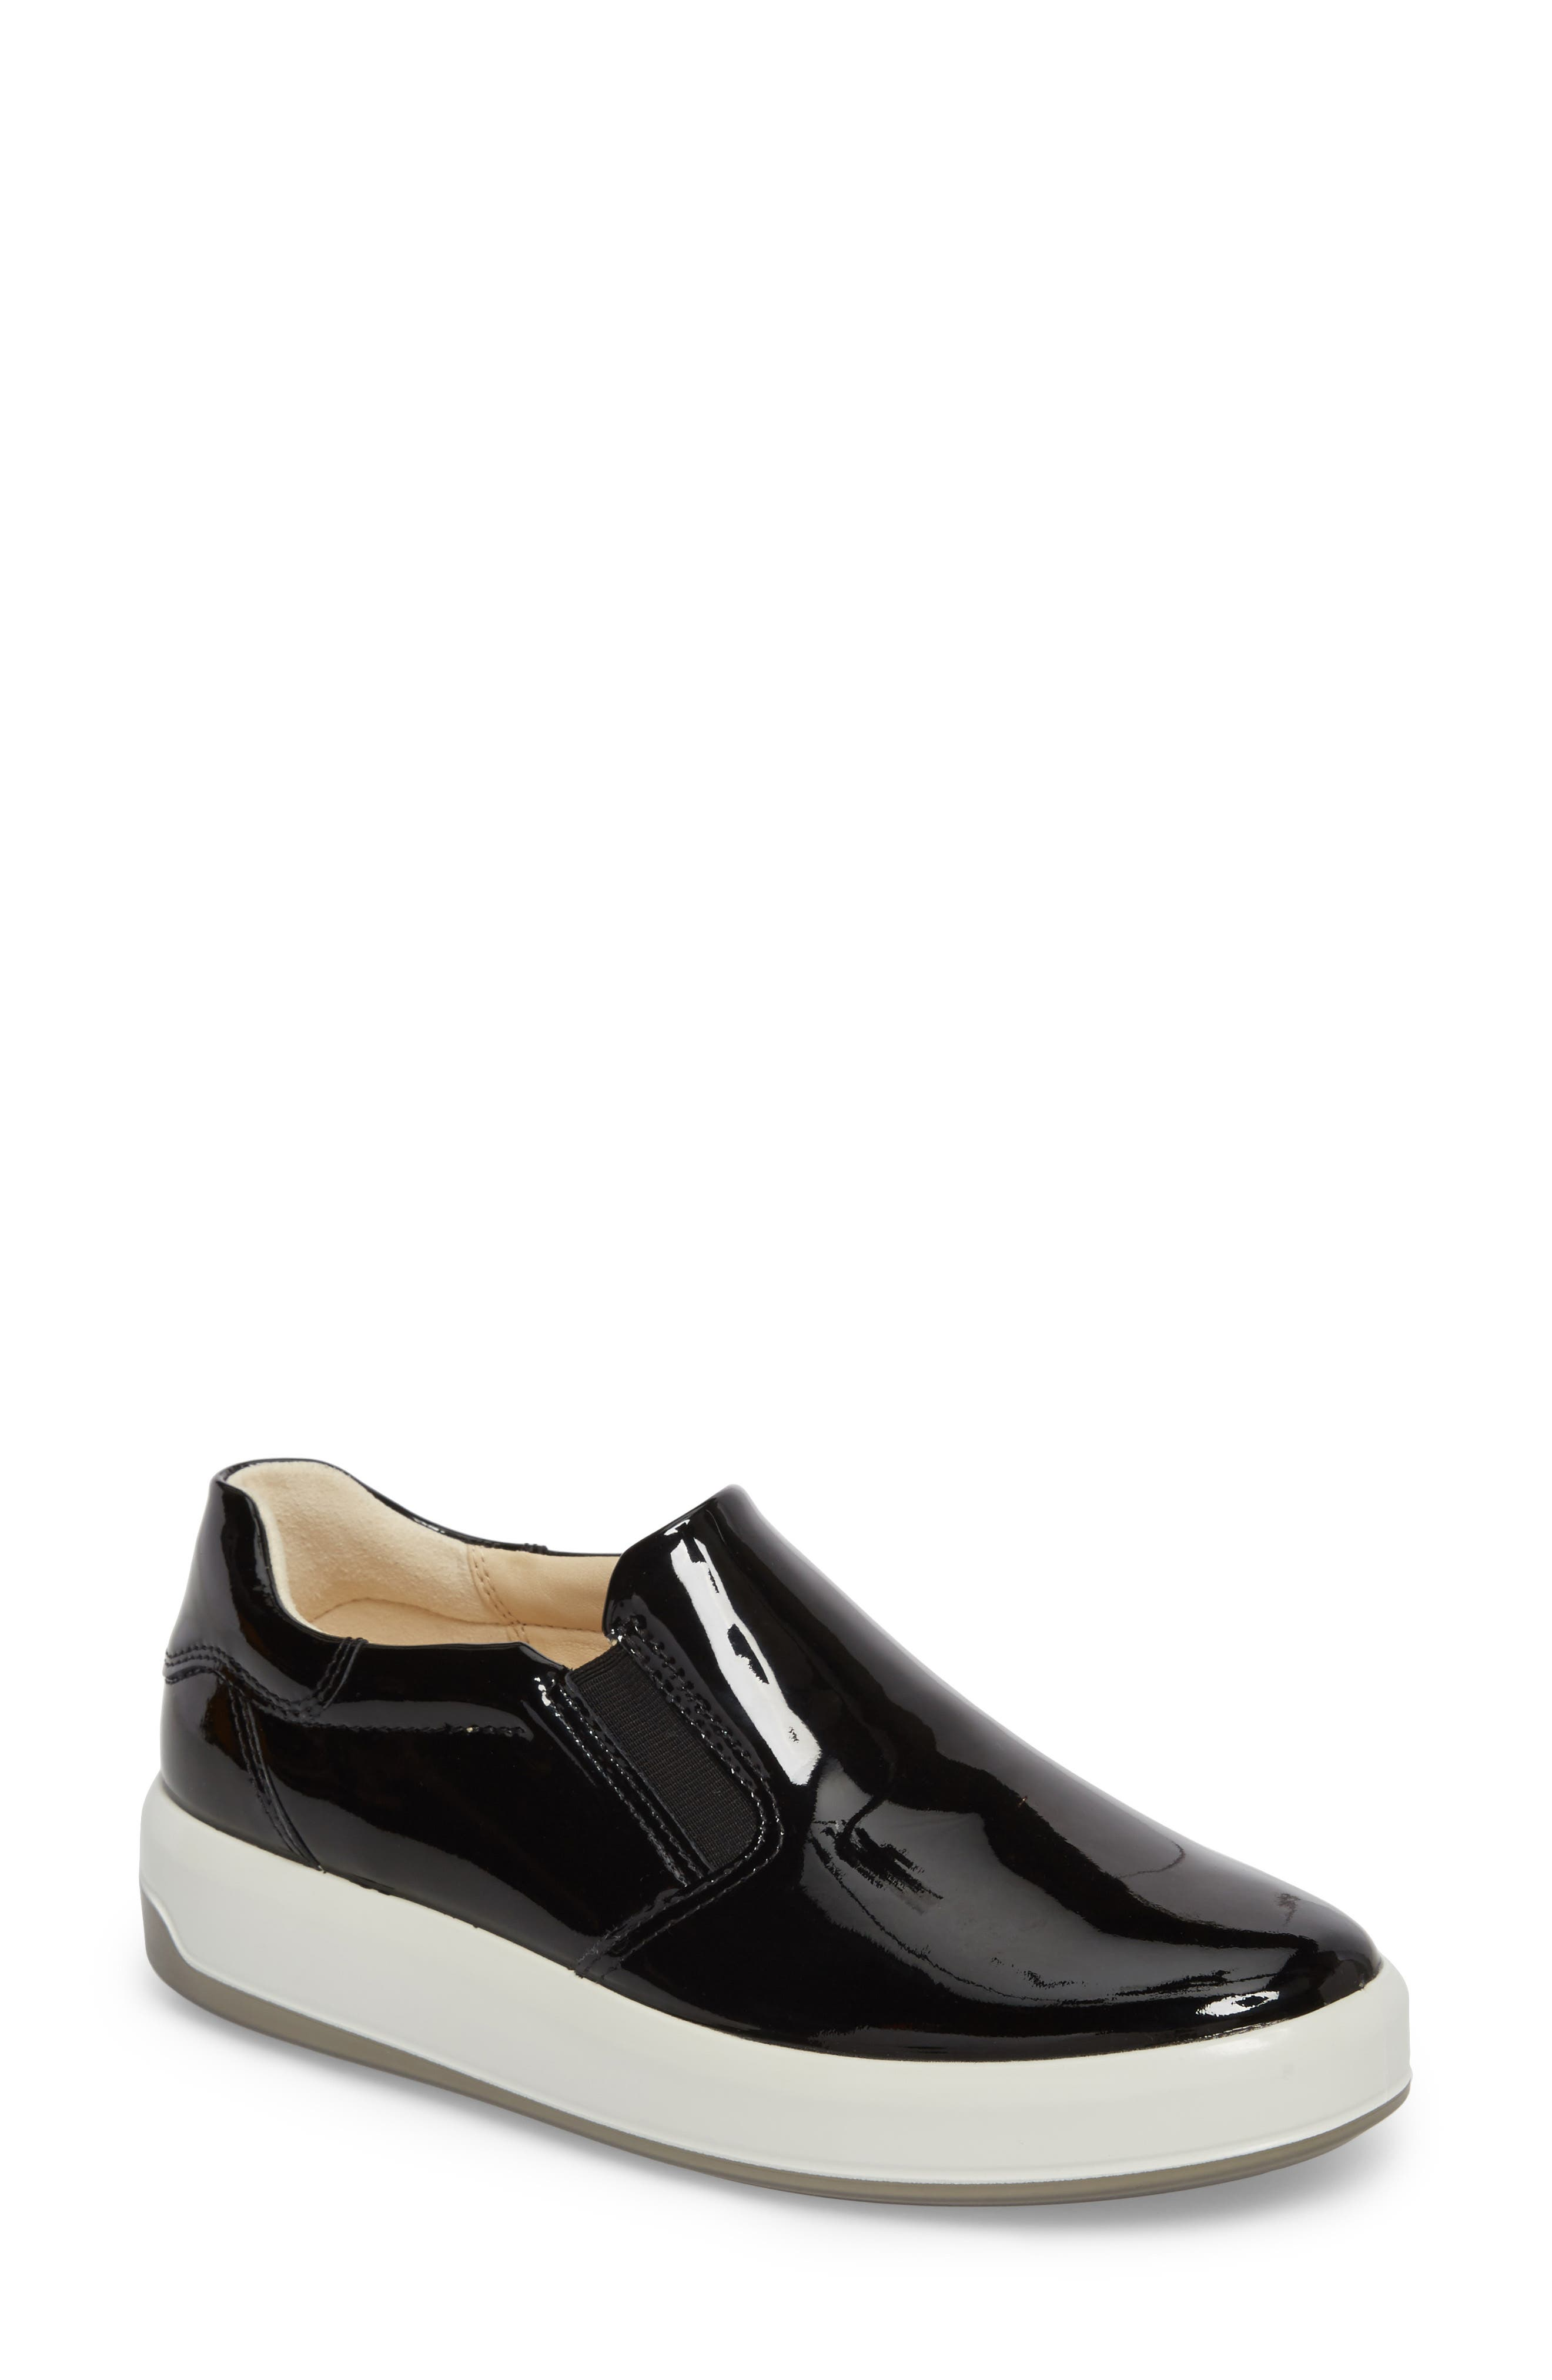 Soft 9 Slip-On Sneaker,                         Main,                         color, Black Patent Leather